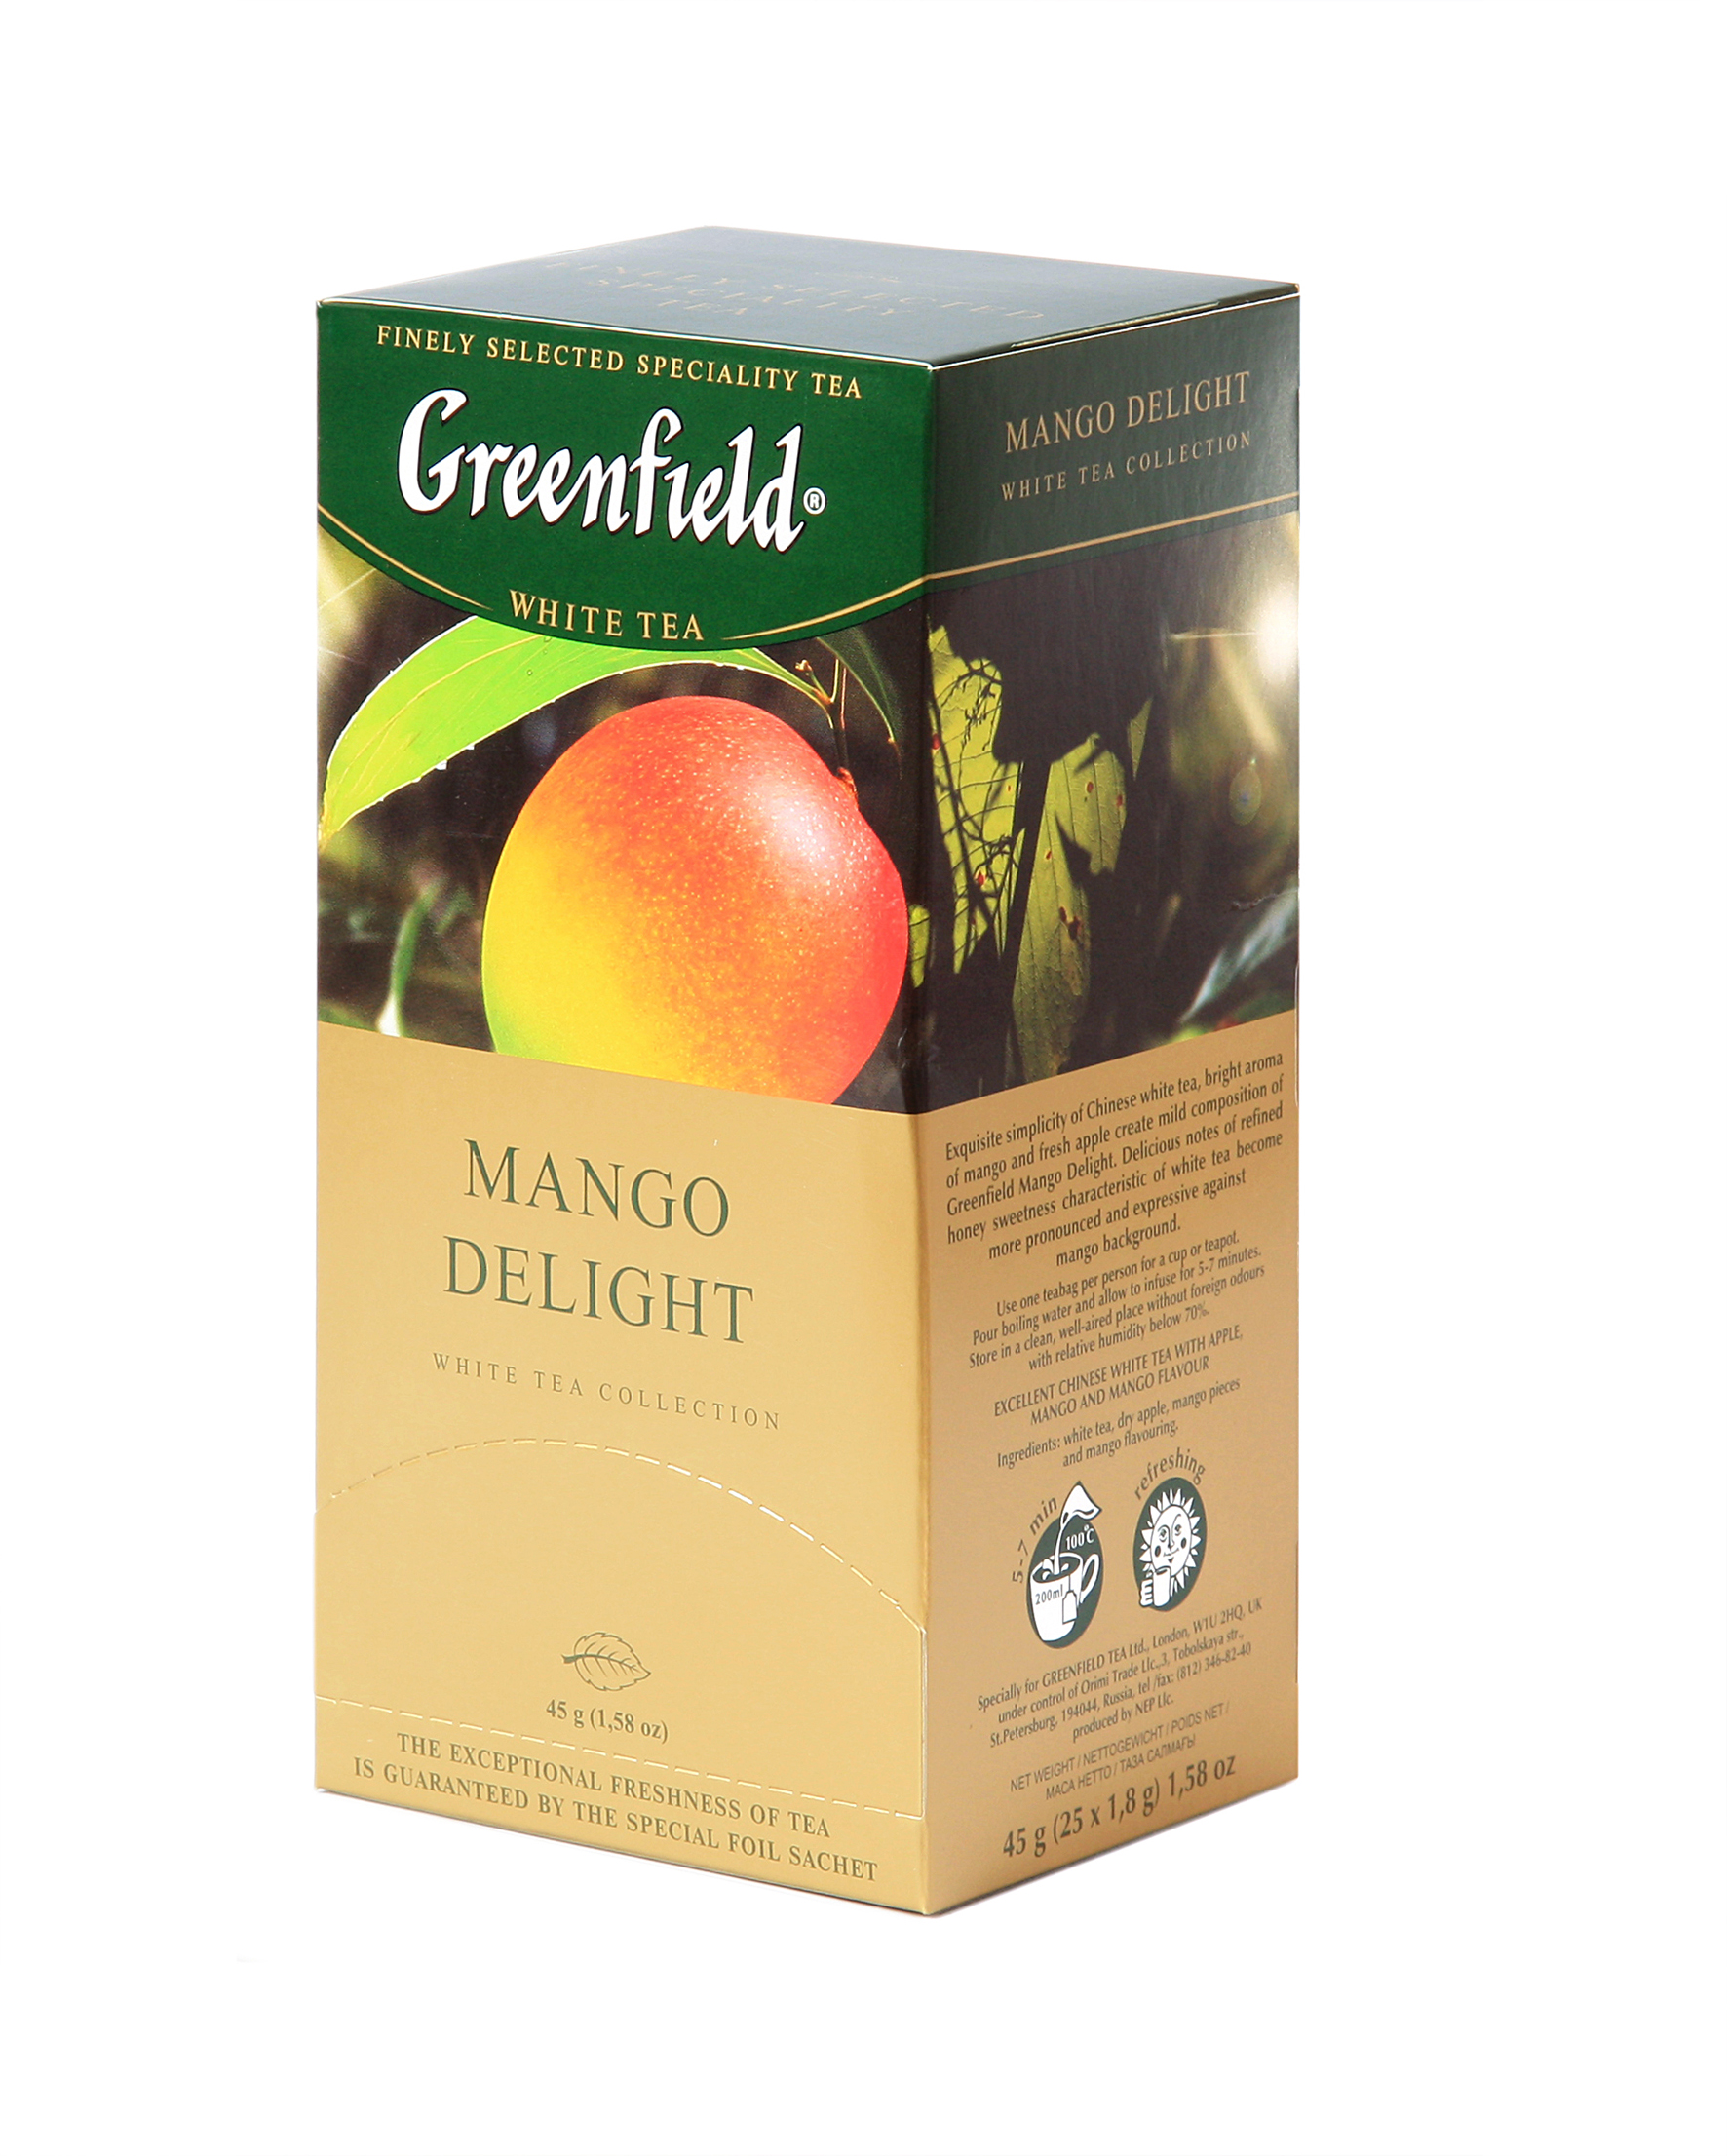 Mango delight Greenfield